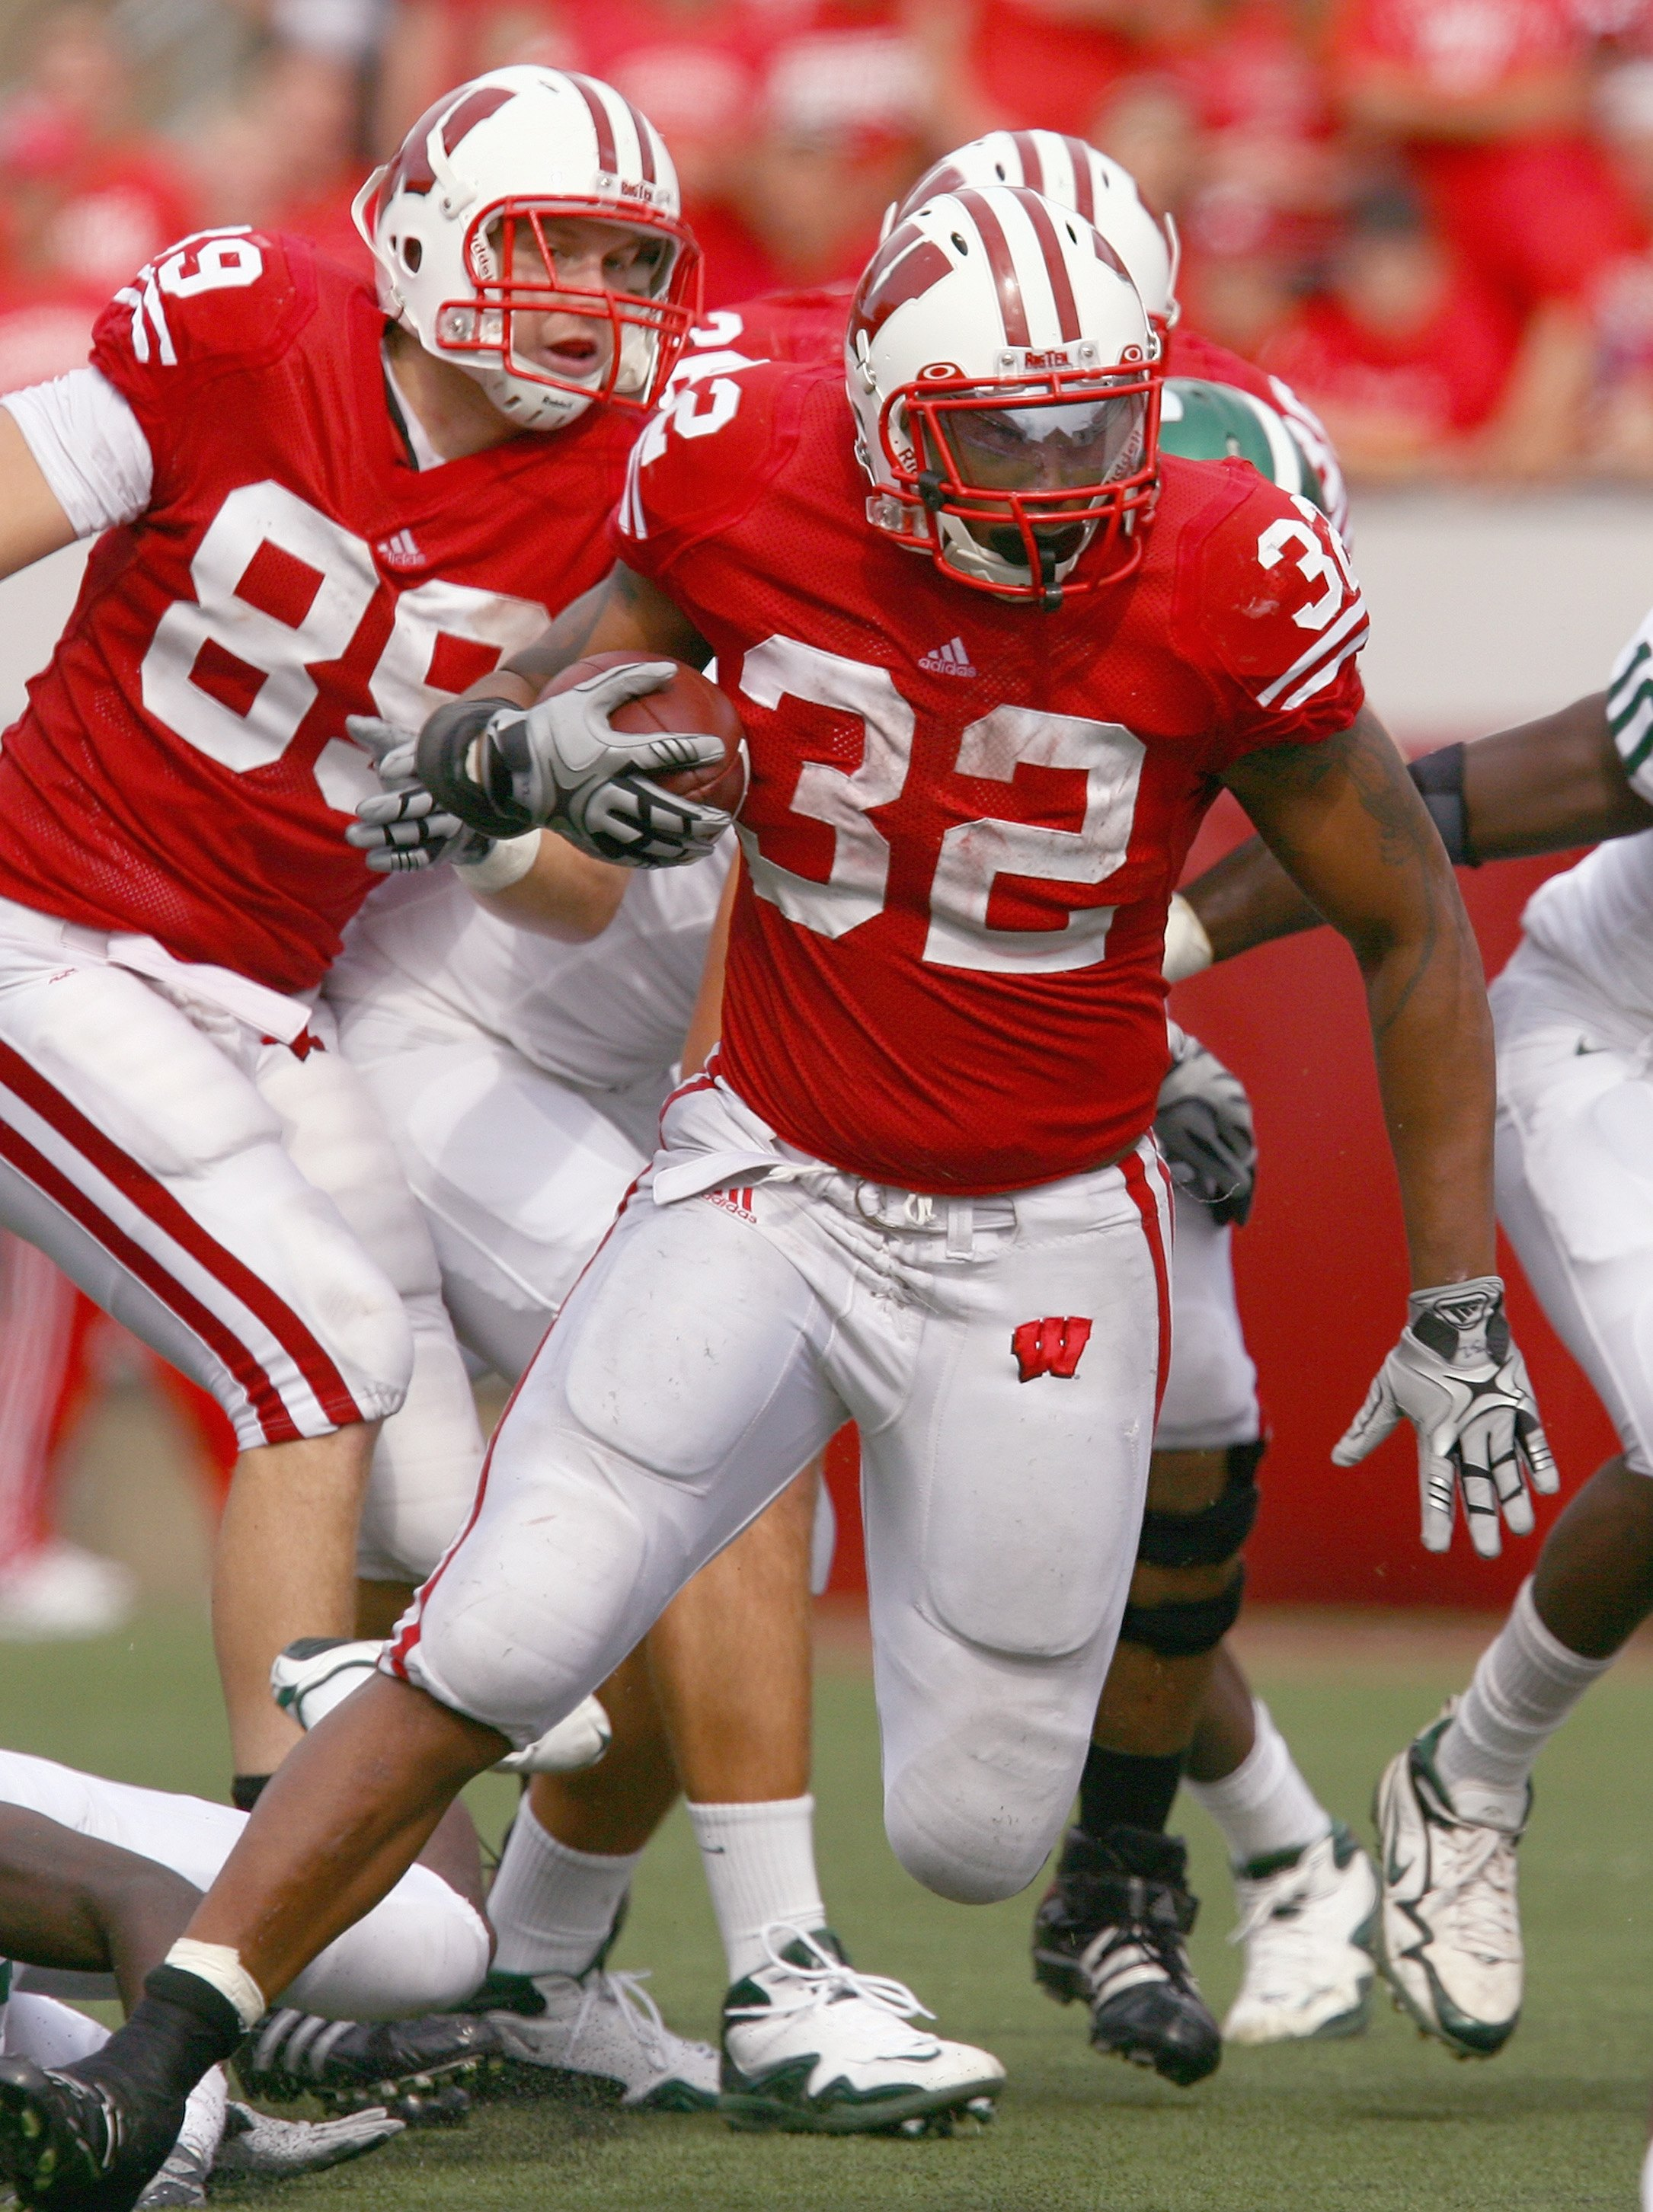 MADISON, WI - SEPTEMBER 26: John Clay #32 of the Wisconsin Badgers carries the ball against the Michigan State Spartans on September 26, 2009 at Camp Randall Stadium in Madison, Wisconsin. (Photo by Jonathan Daniel/Getty Images)